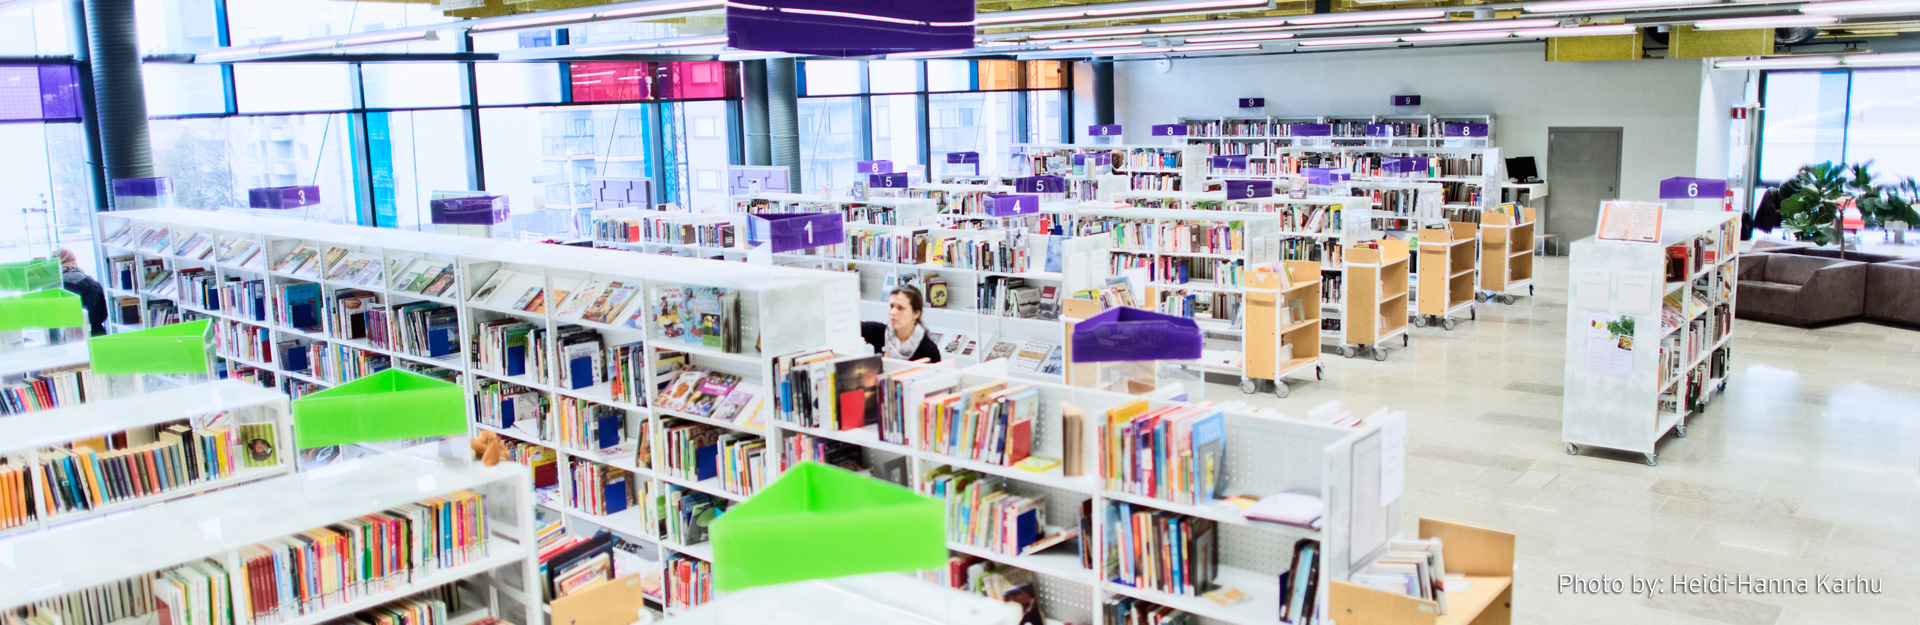 TRANSFORMING LIBRARIES INTO ACTIVE SPACES FOR THE CREATORS OF THE FUTURE